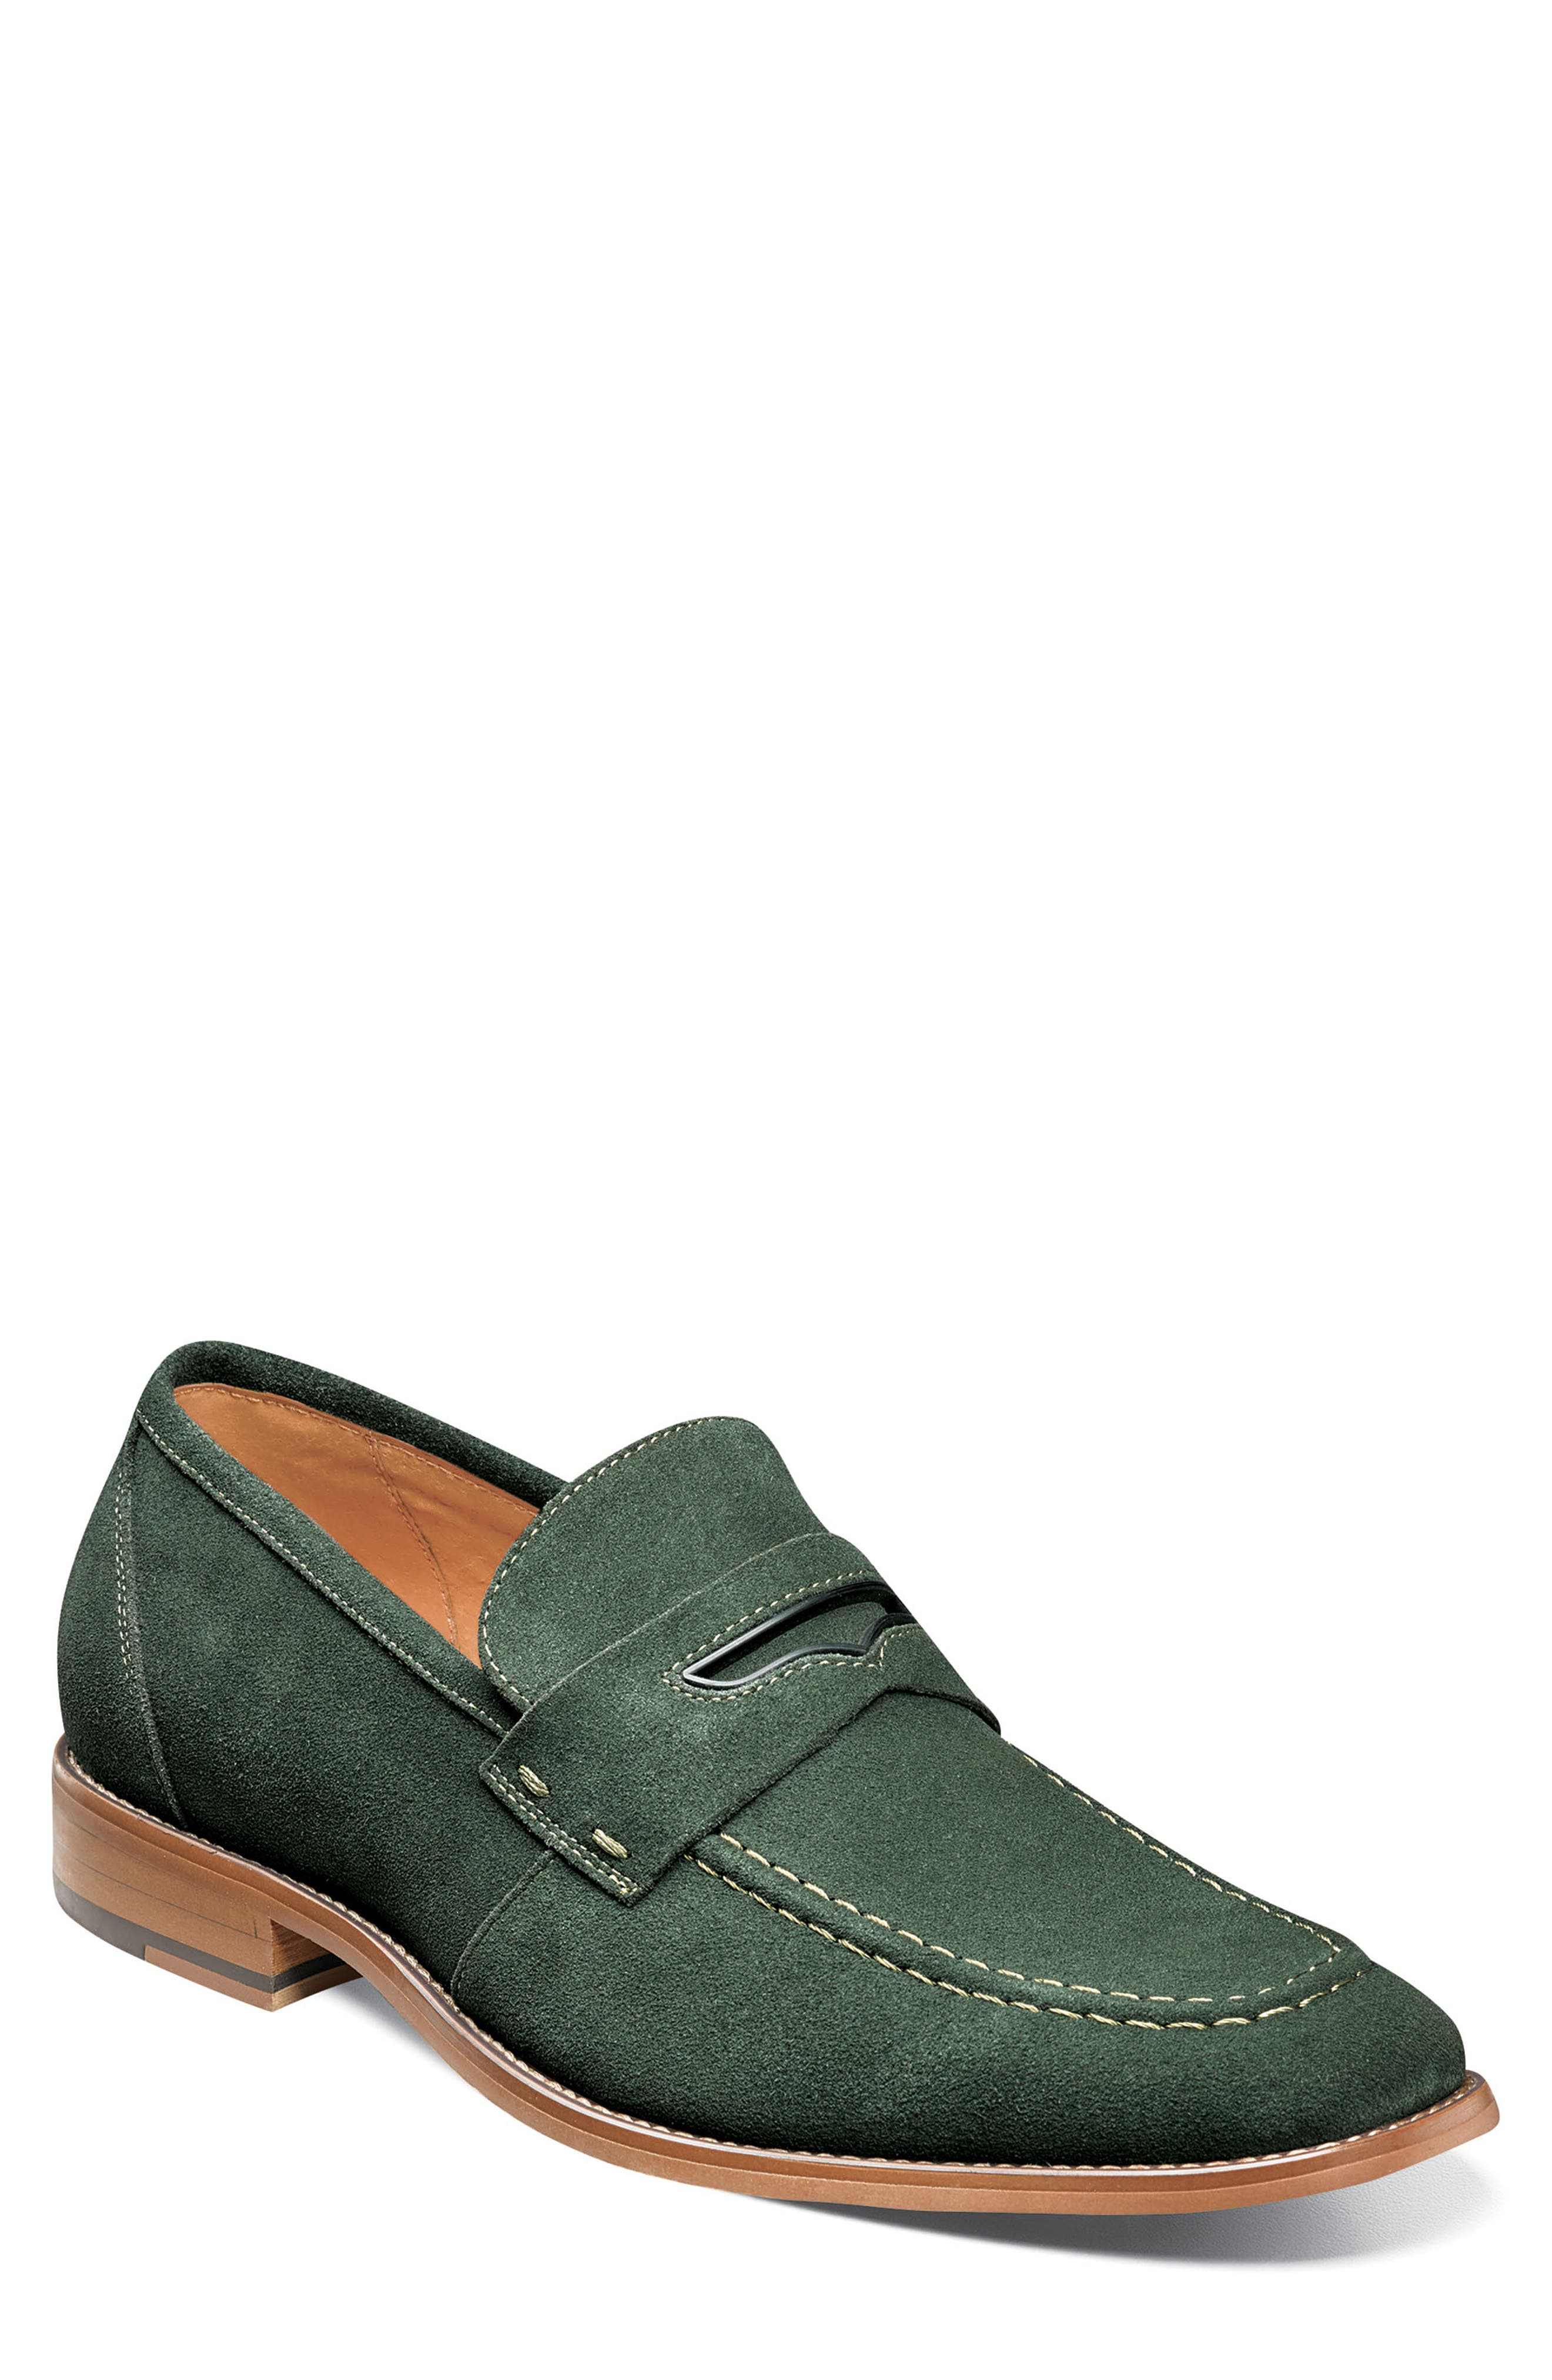 Colfax Apron Toe Penny Loafer,                         Main,                         color, DARK GREEN SUEDE